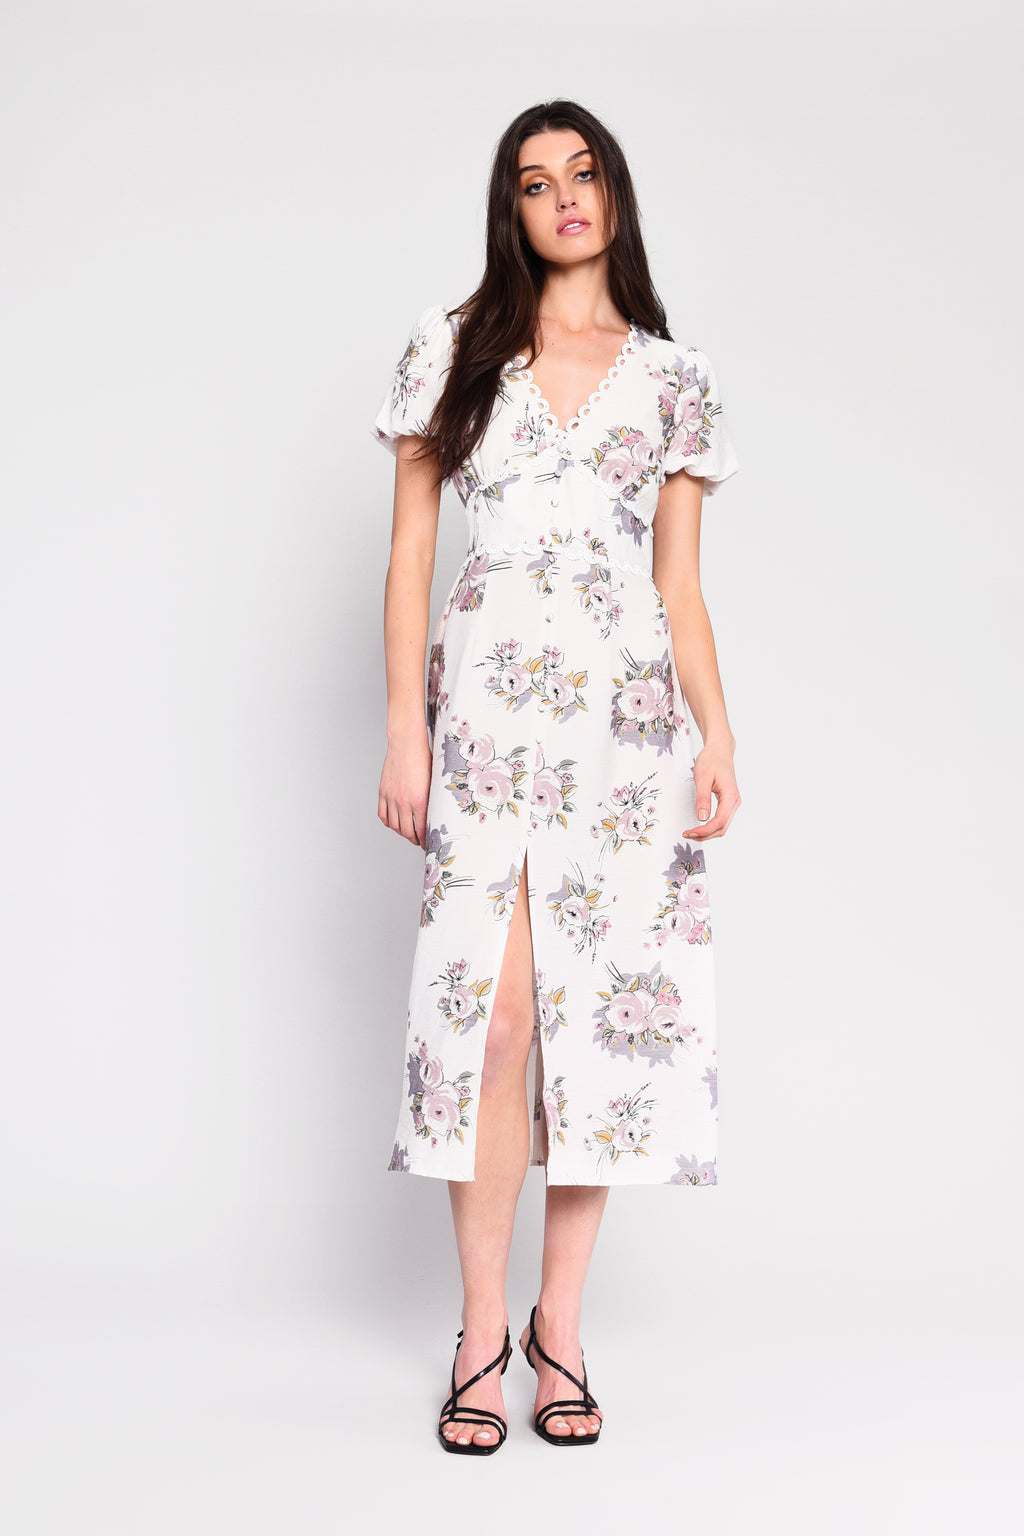 CALLIE floral midi dress - white/lilac